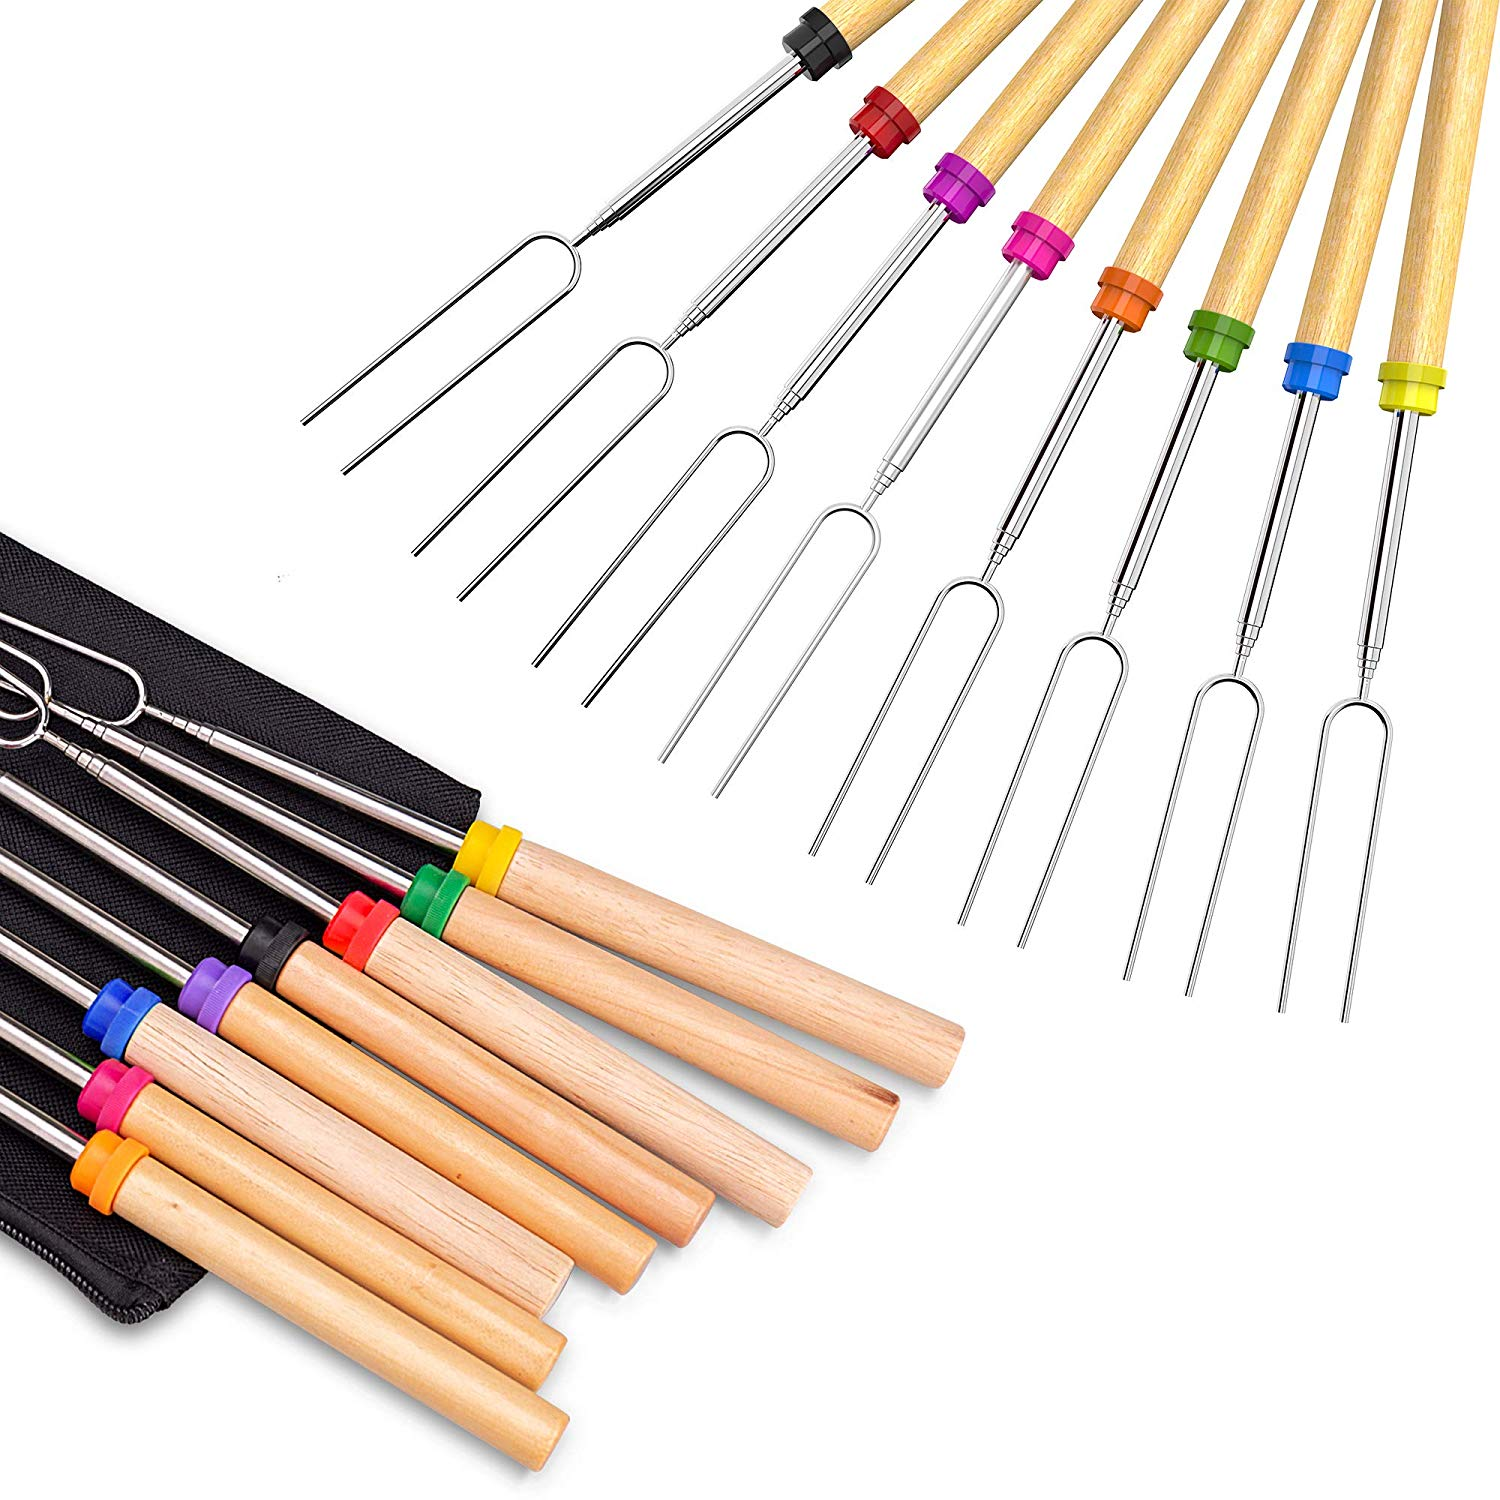 Extendable Forks Telescoping Smores Skewers for Smores and Hot Dog Fire Pit Camping Cookware Campfire Cooking Kids no branded Marshmallow Roasting Sticks